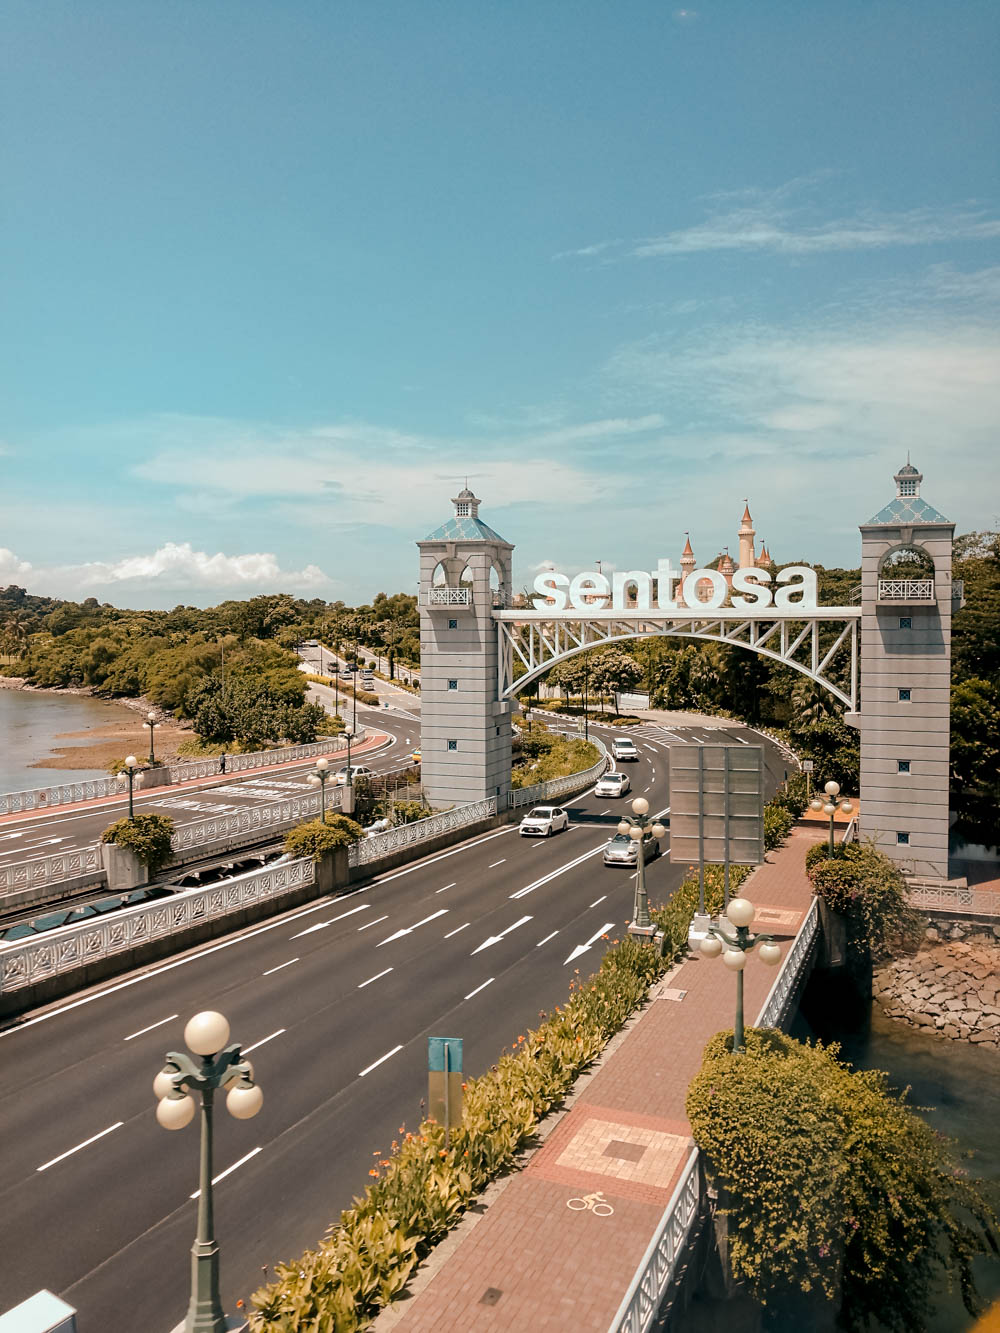 5 Things to Expect at Universal Studios Singapore